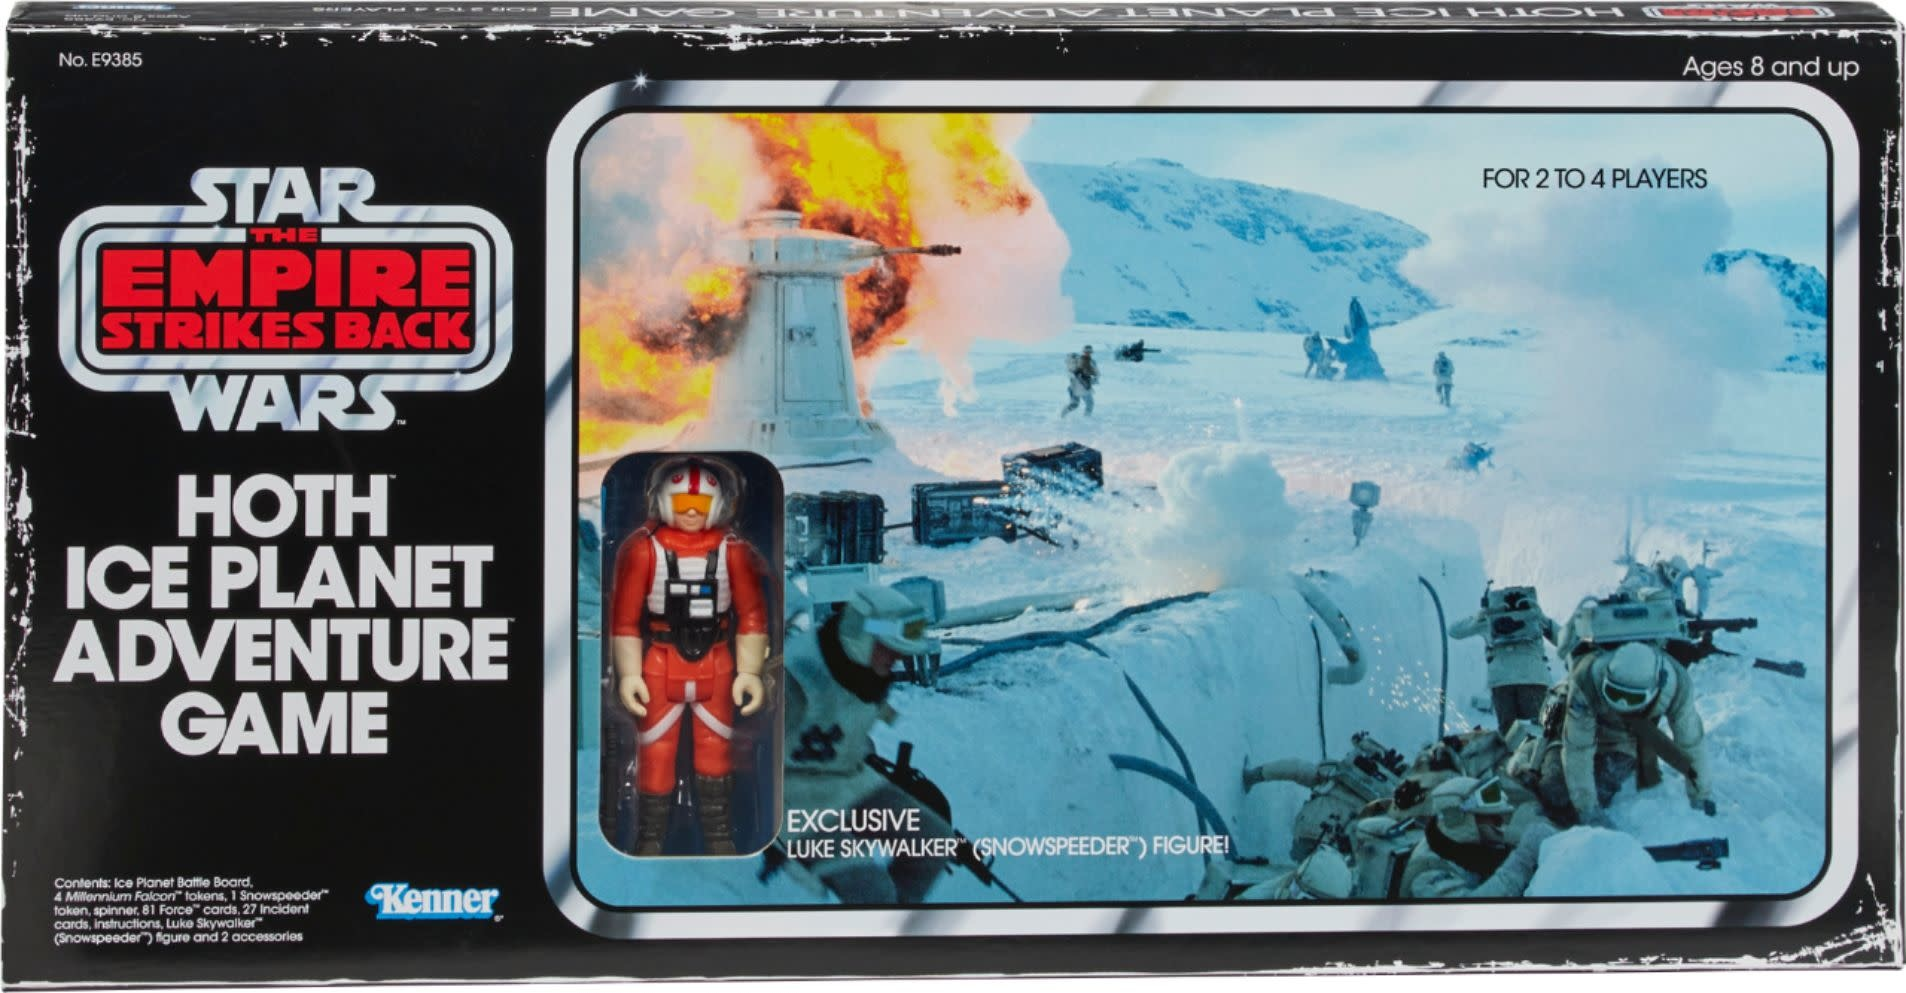 Star Wars: Hoth Ice Planet Retro Adventure Game